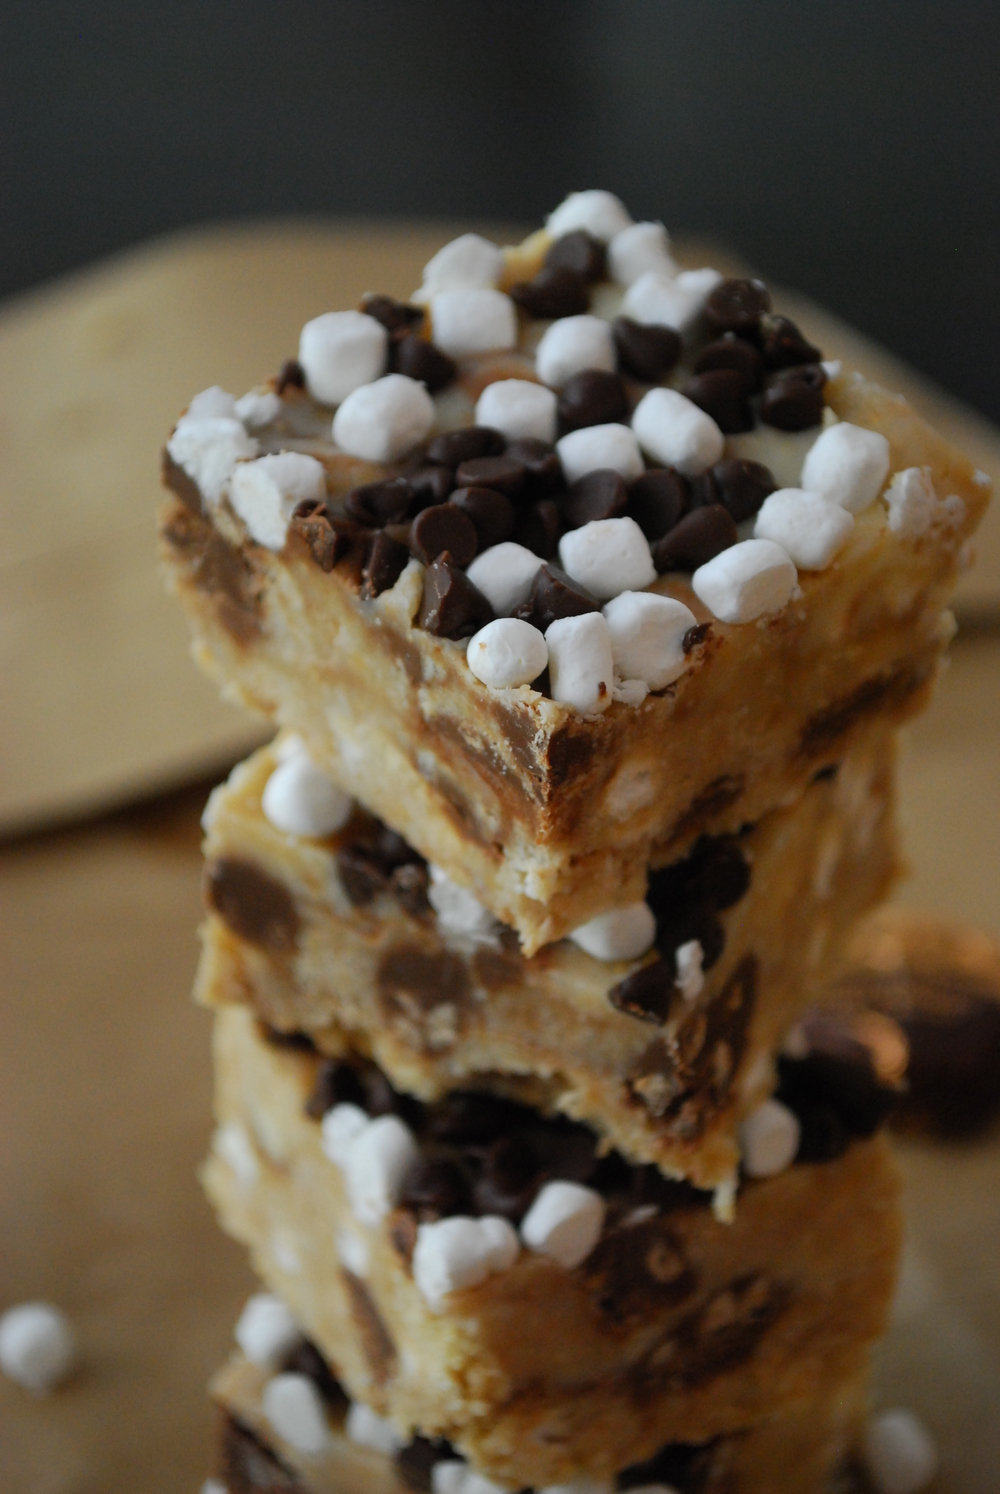 I'm on the fence with these but it looks AMAZING!! The reason I am on the fence is because I believe s'mores should have roasted burnt gooey marshmallows! =) But this is a No Bake S'mores Bar - www.thedomesticrebel.com